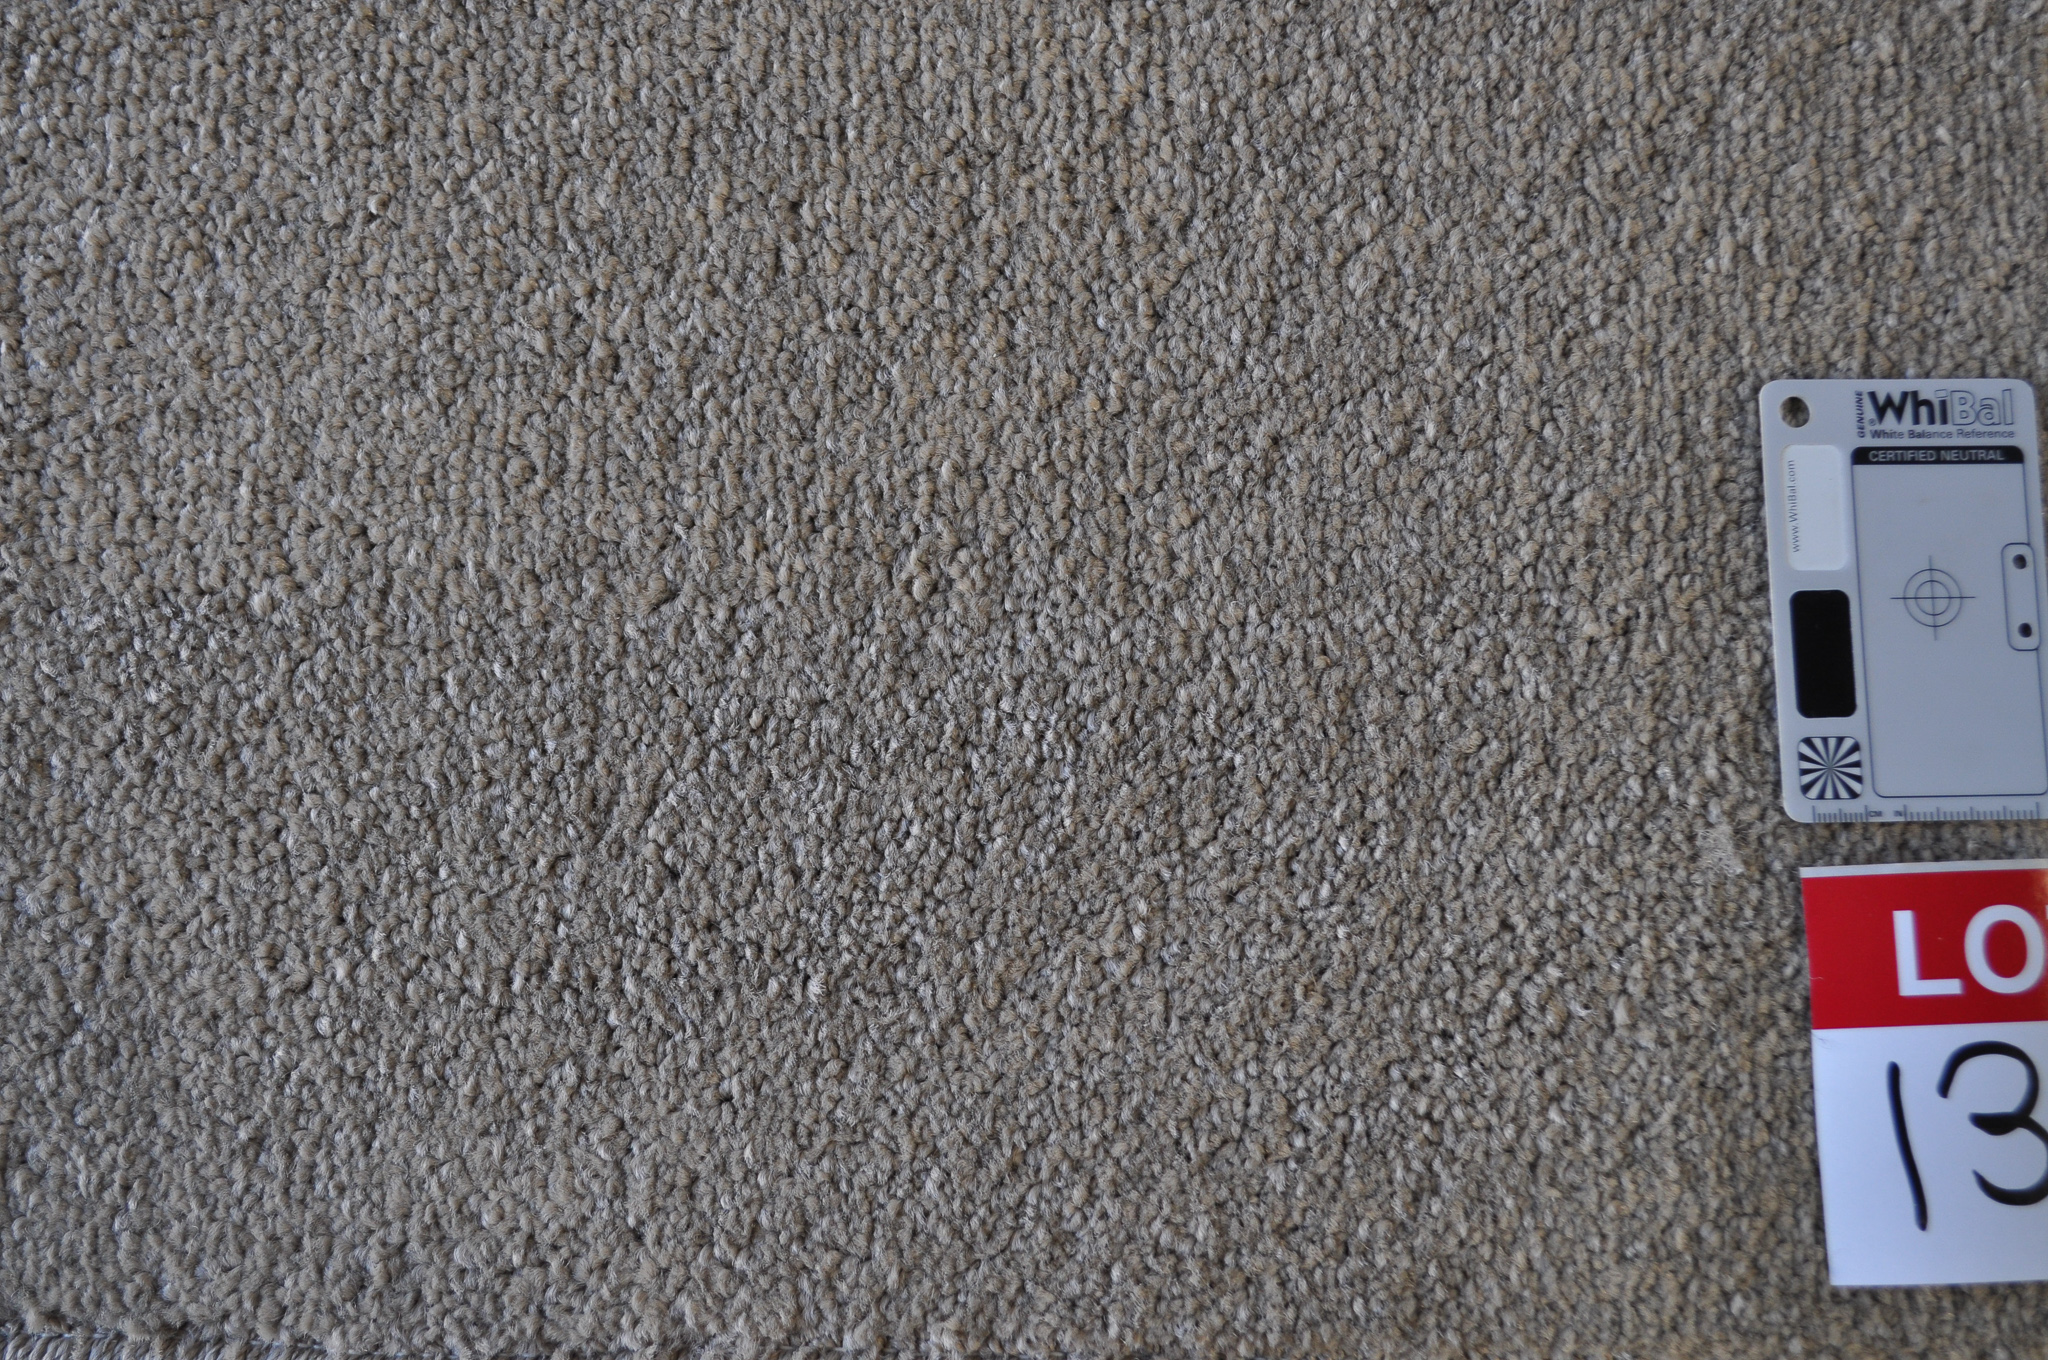 grey colored, twist pile roll of carpet on sale at Concord Floors, it being a remnant roll in Concord Floor's warehouse.